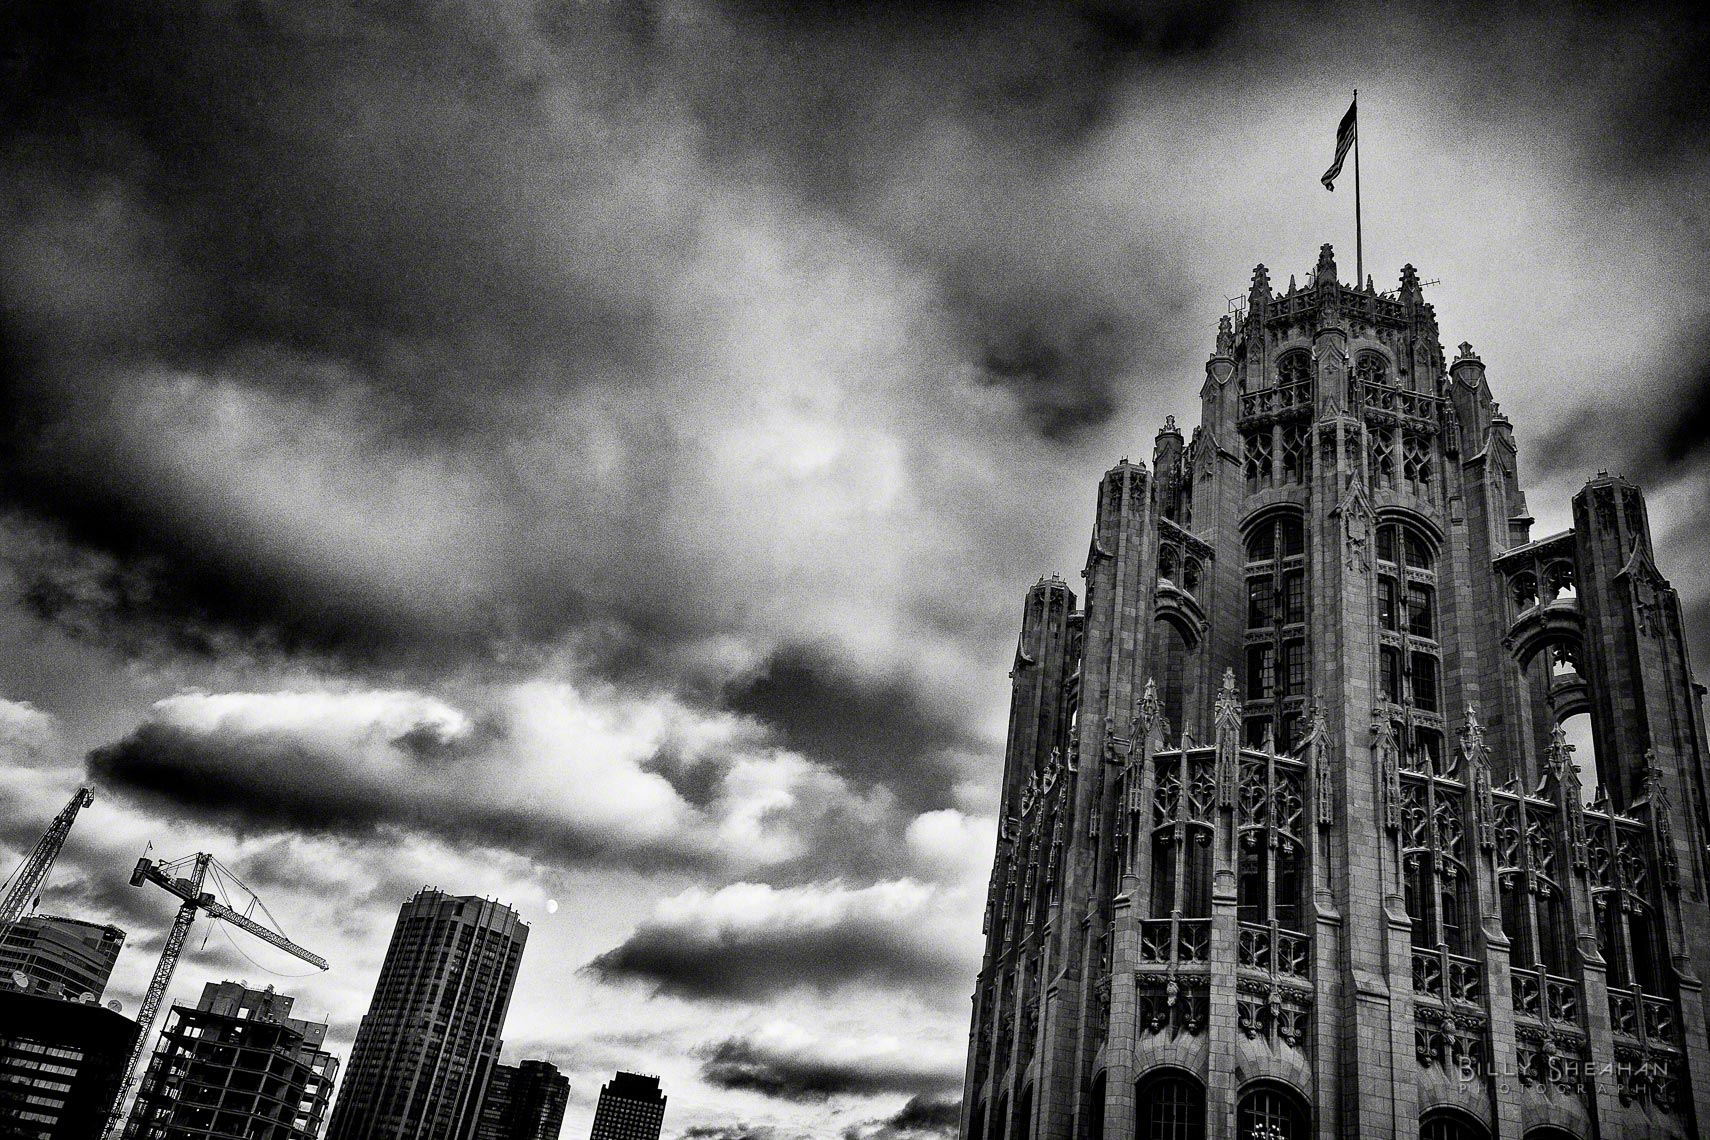 Clouds_Above_Tribune_Tower_Chicago_01Dec2006_010_BW_D.jpg